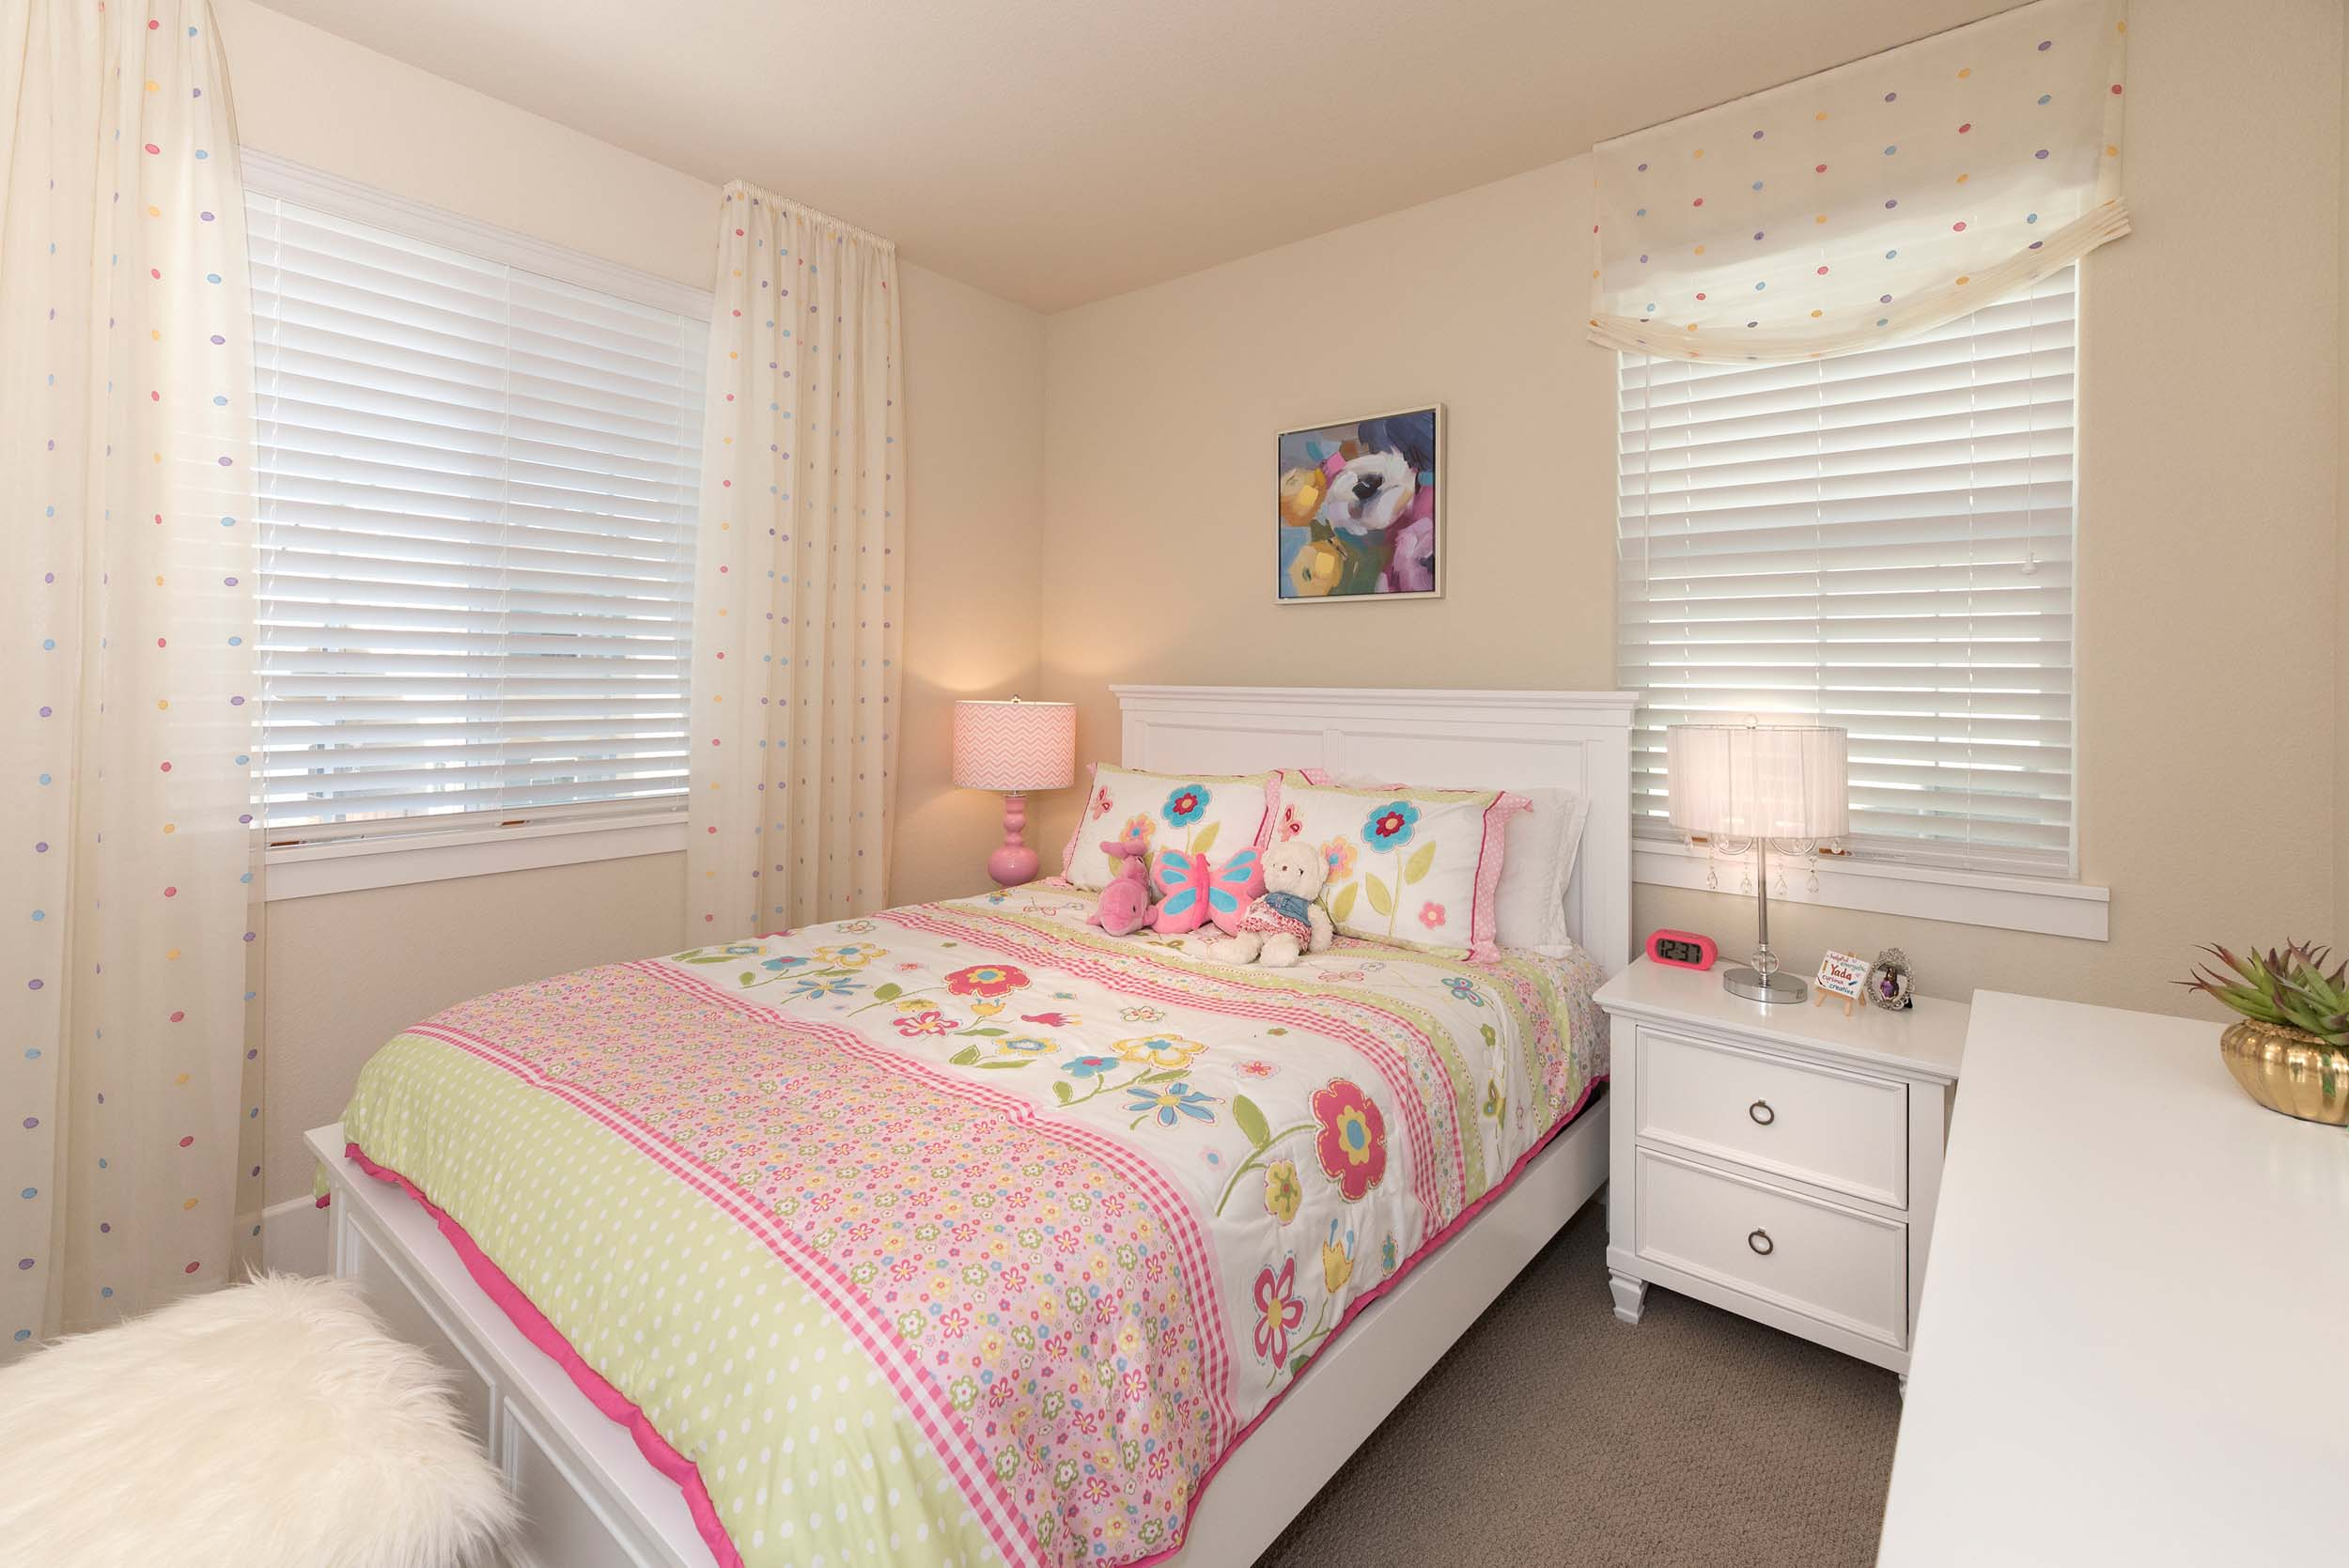 Small bedroom with pink bedsheet, bedside table and table lamps